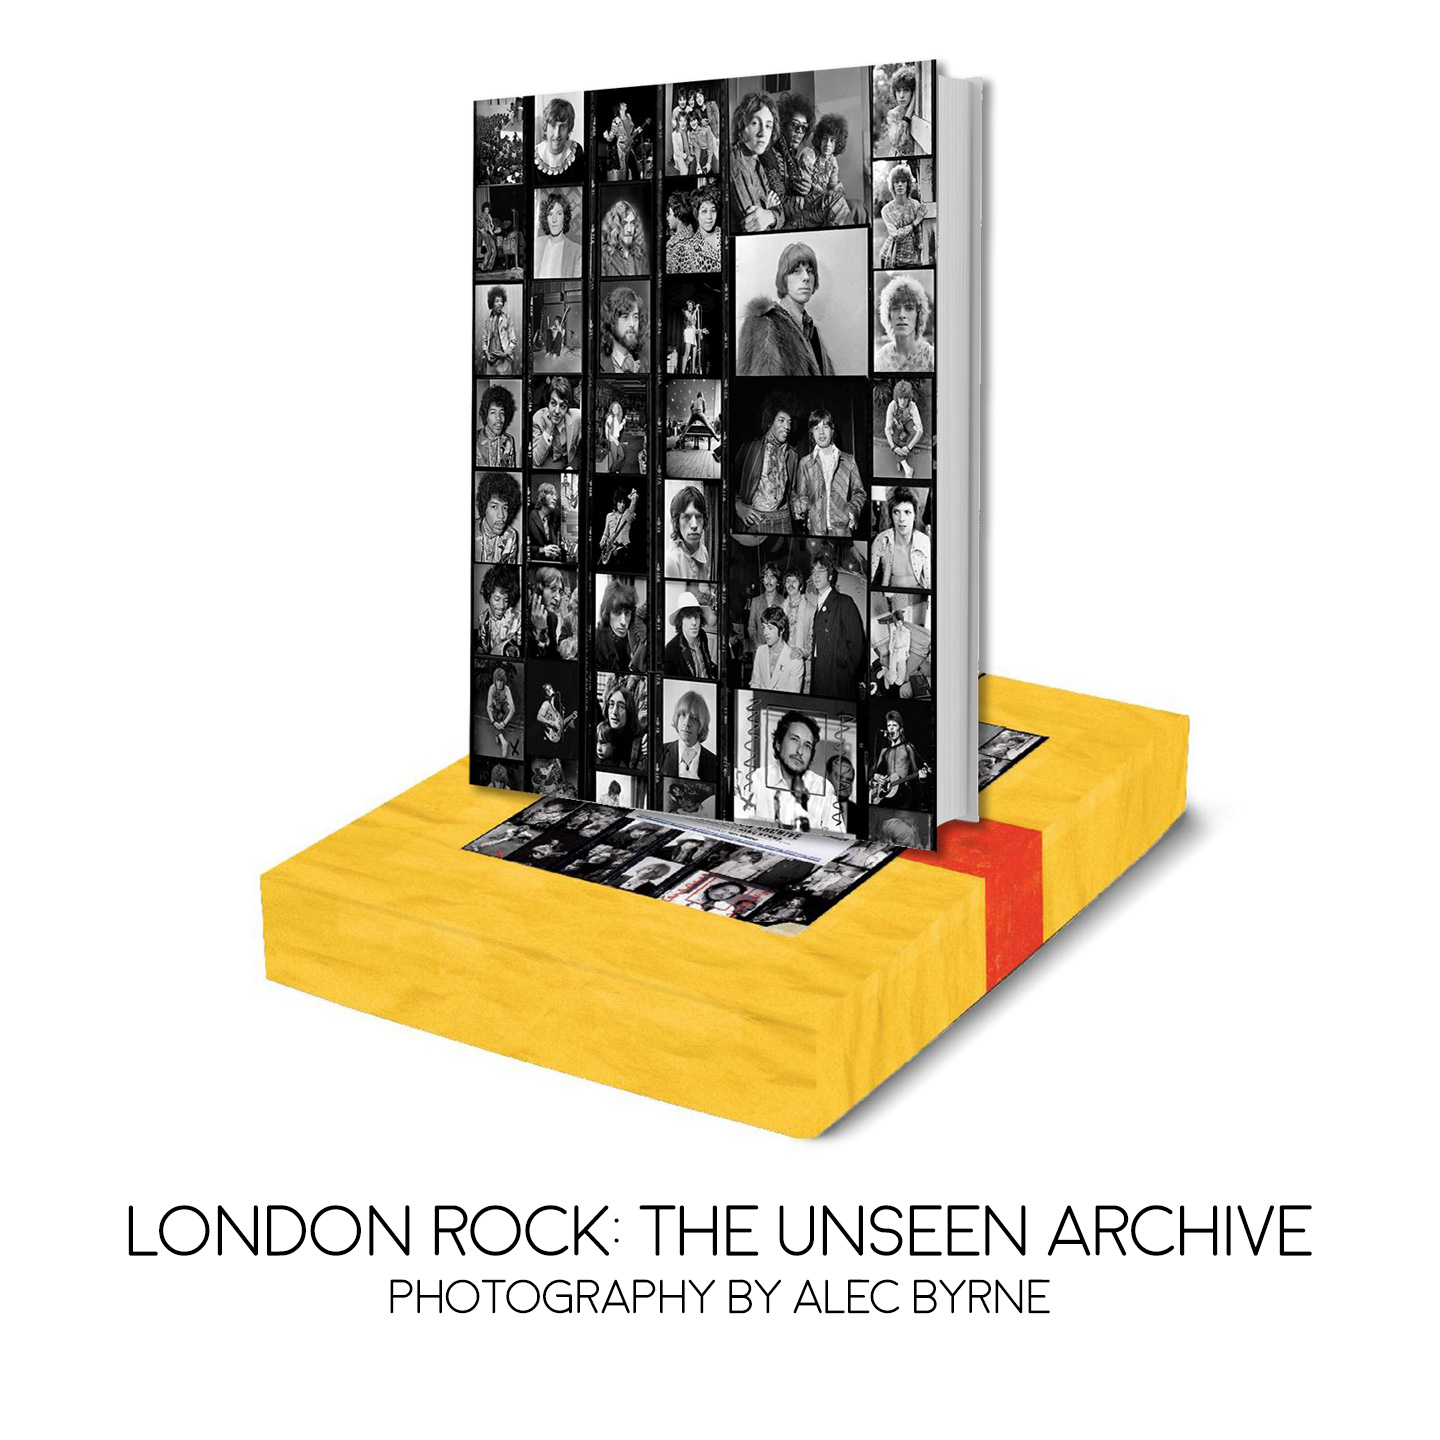 London Rock: The Unseen Archive - Photography by Alec Byrne